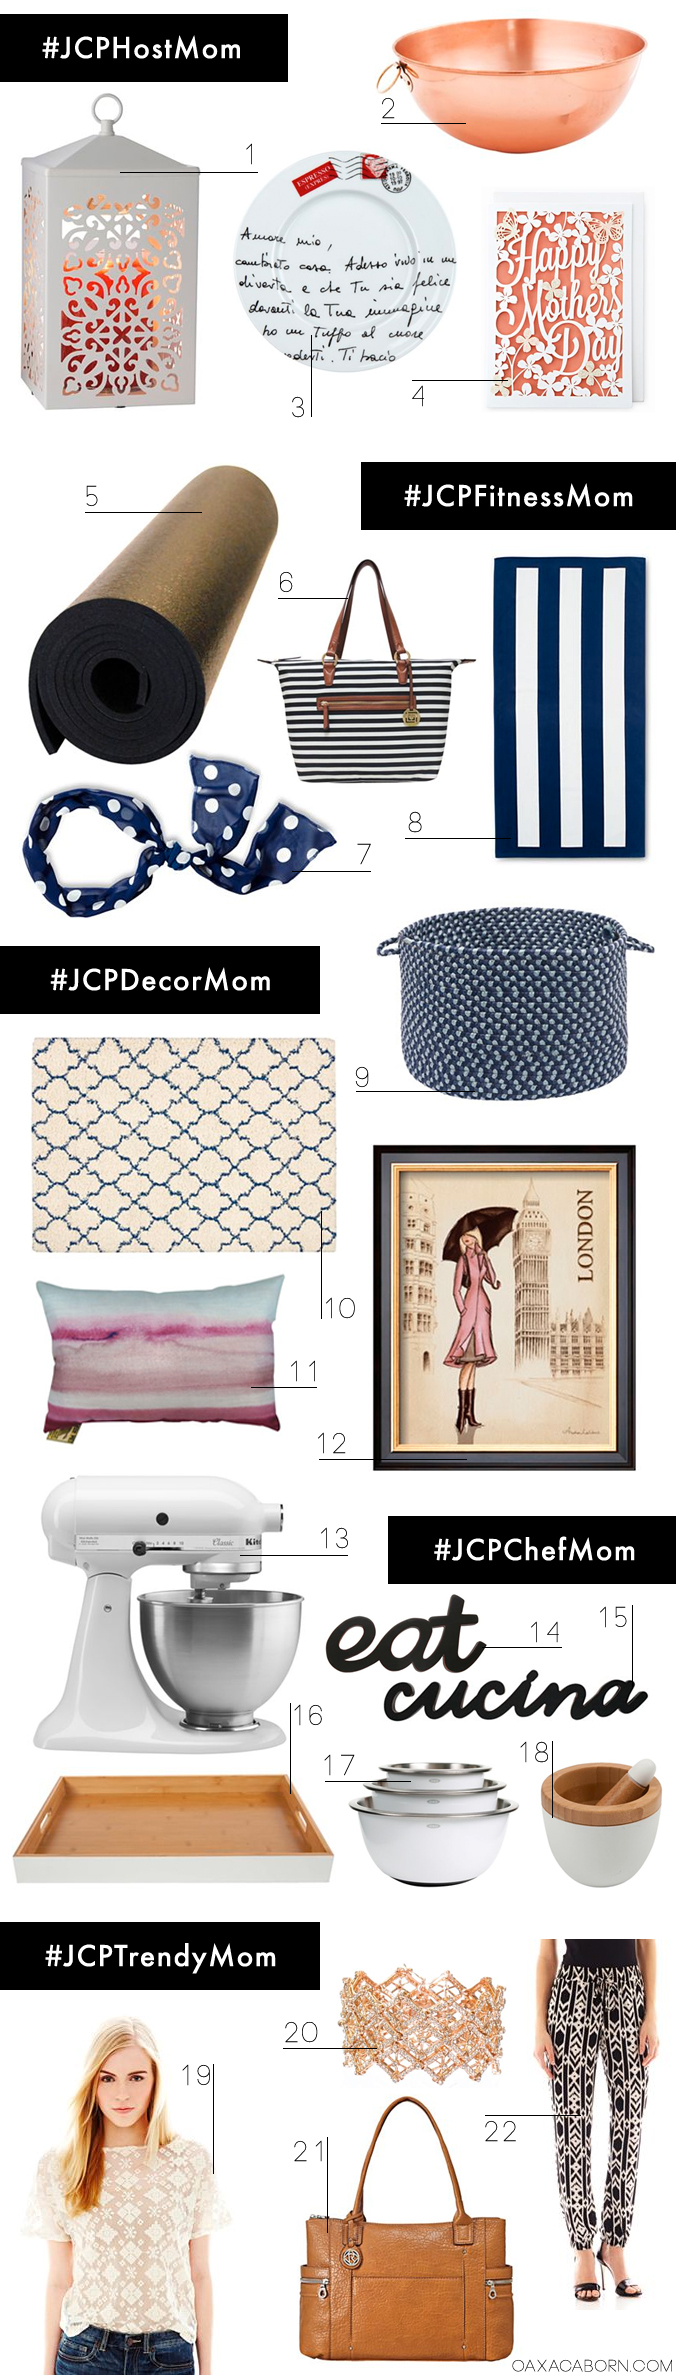 A @JCPenney #Momisms Mother's Day Gift Guide curated by the Oaxacaborn blog // #JCPHostMom #JCPFitnessMom #JCPDecorMom #JCPChefMom #JCPTrendyMom